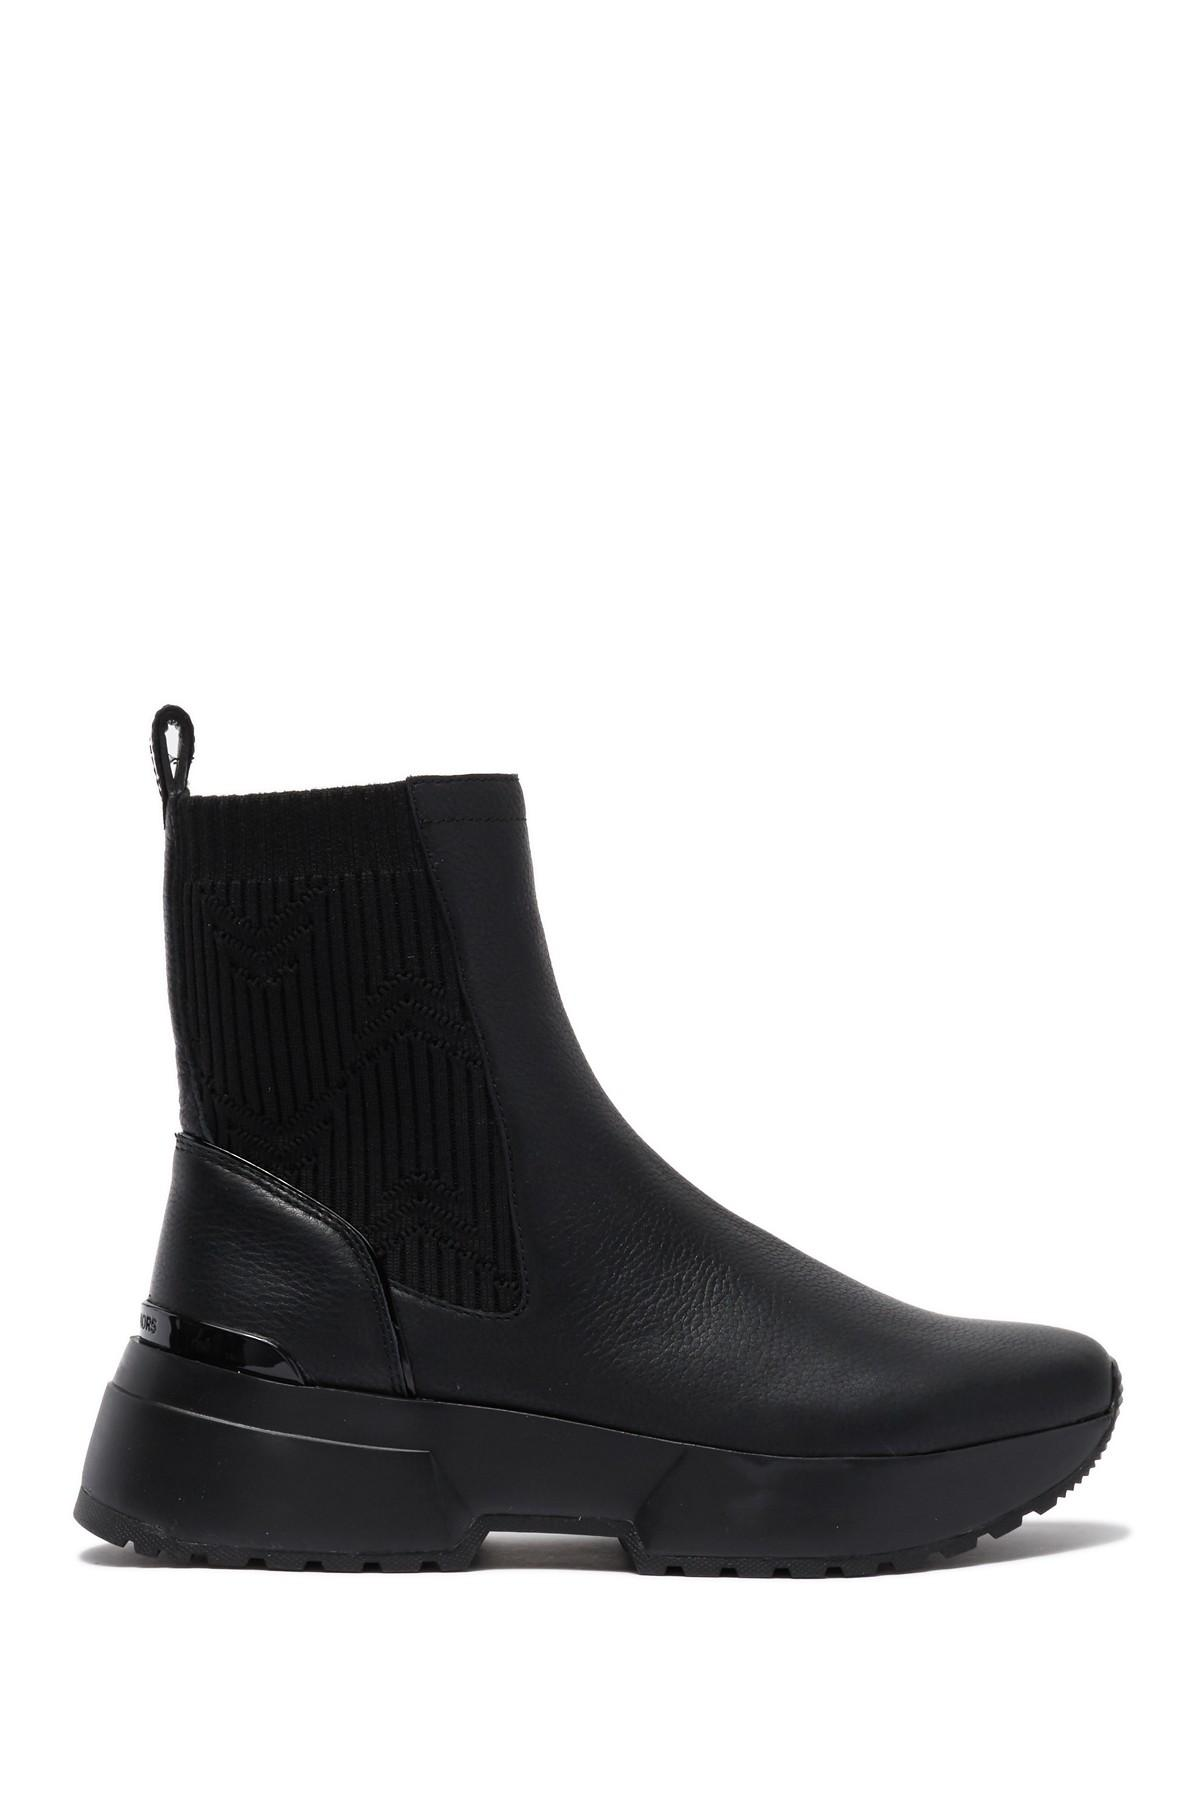 Michael Kors Cosmo Leather Sneaker Boot